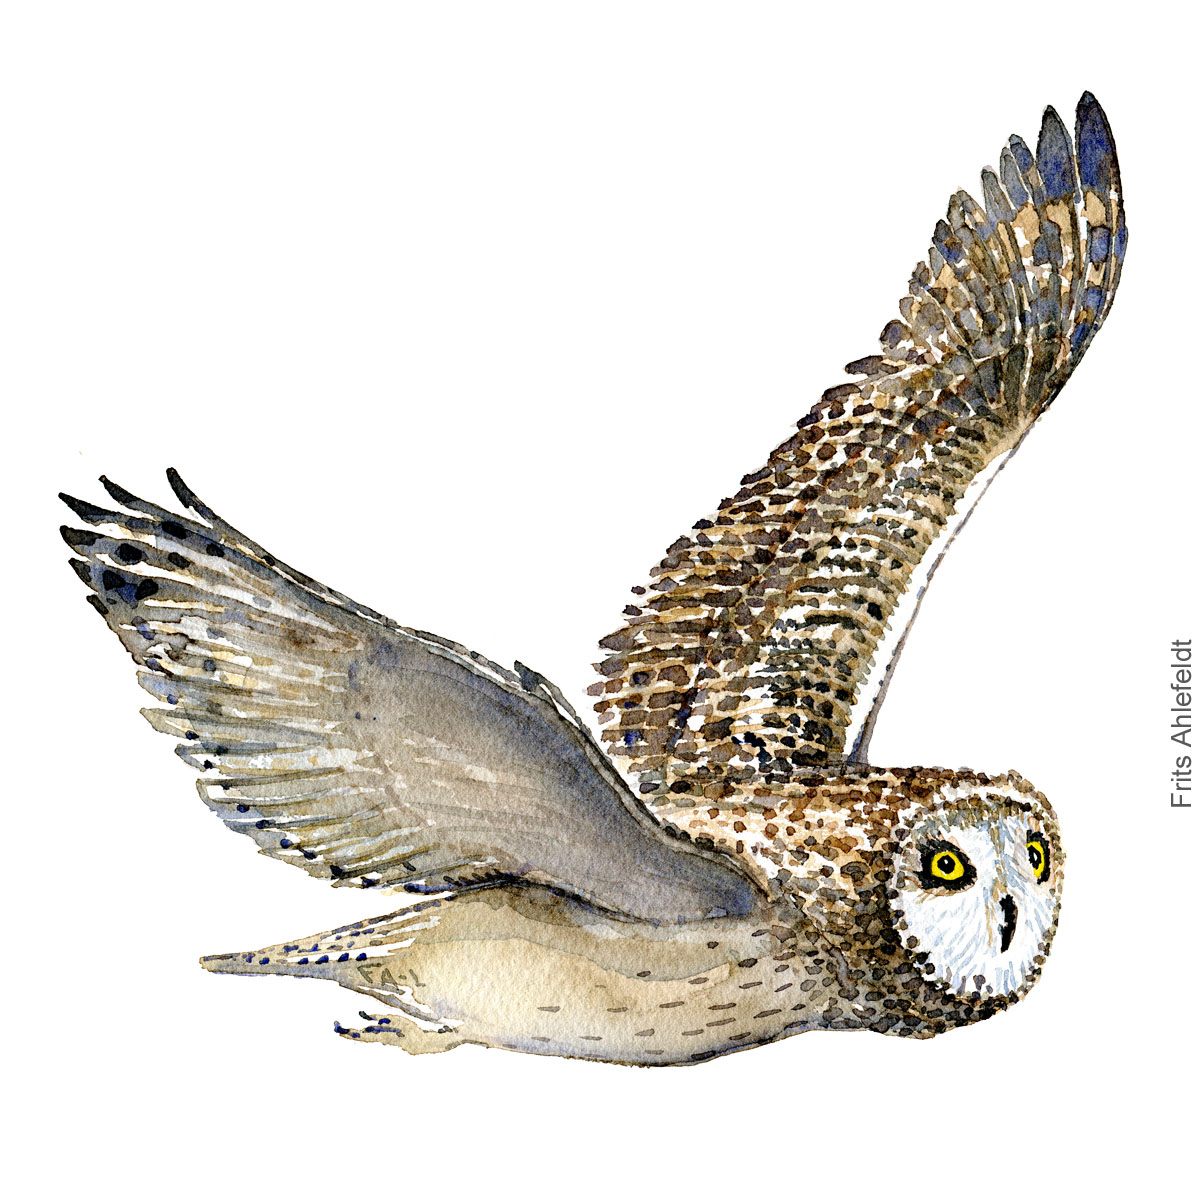 Mosehornsugle - Short-eared owl - Bird watercolor painting. Artwork by Frits Ahlefeldt. Fugle akvarel